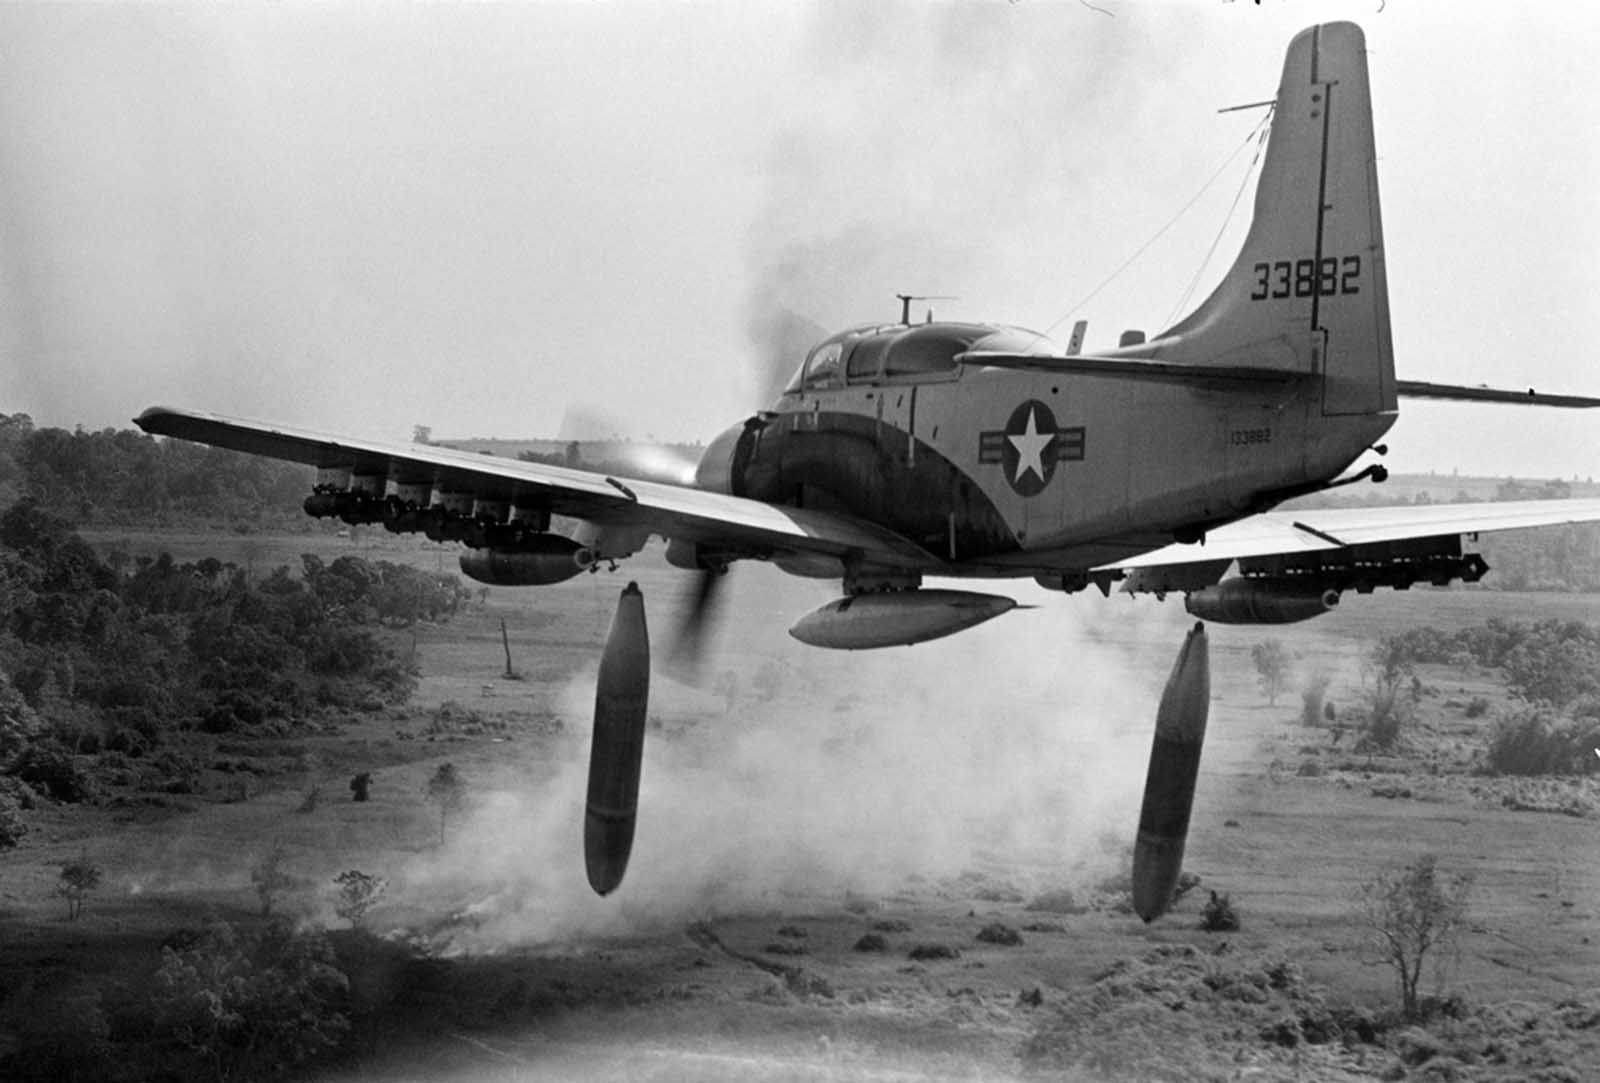 Flying low over the jungle, an A-1 Skyraider drops 500-pound bombs on a Viet Cong position below as smoke rises from a previous pass at the target, on December 26, 1964.